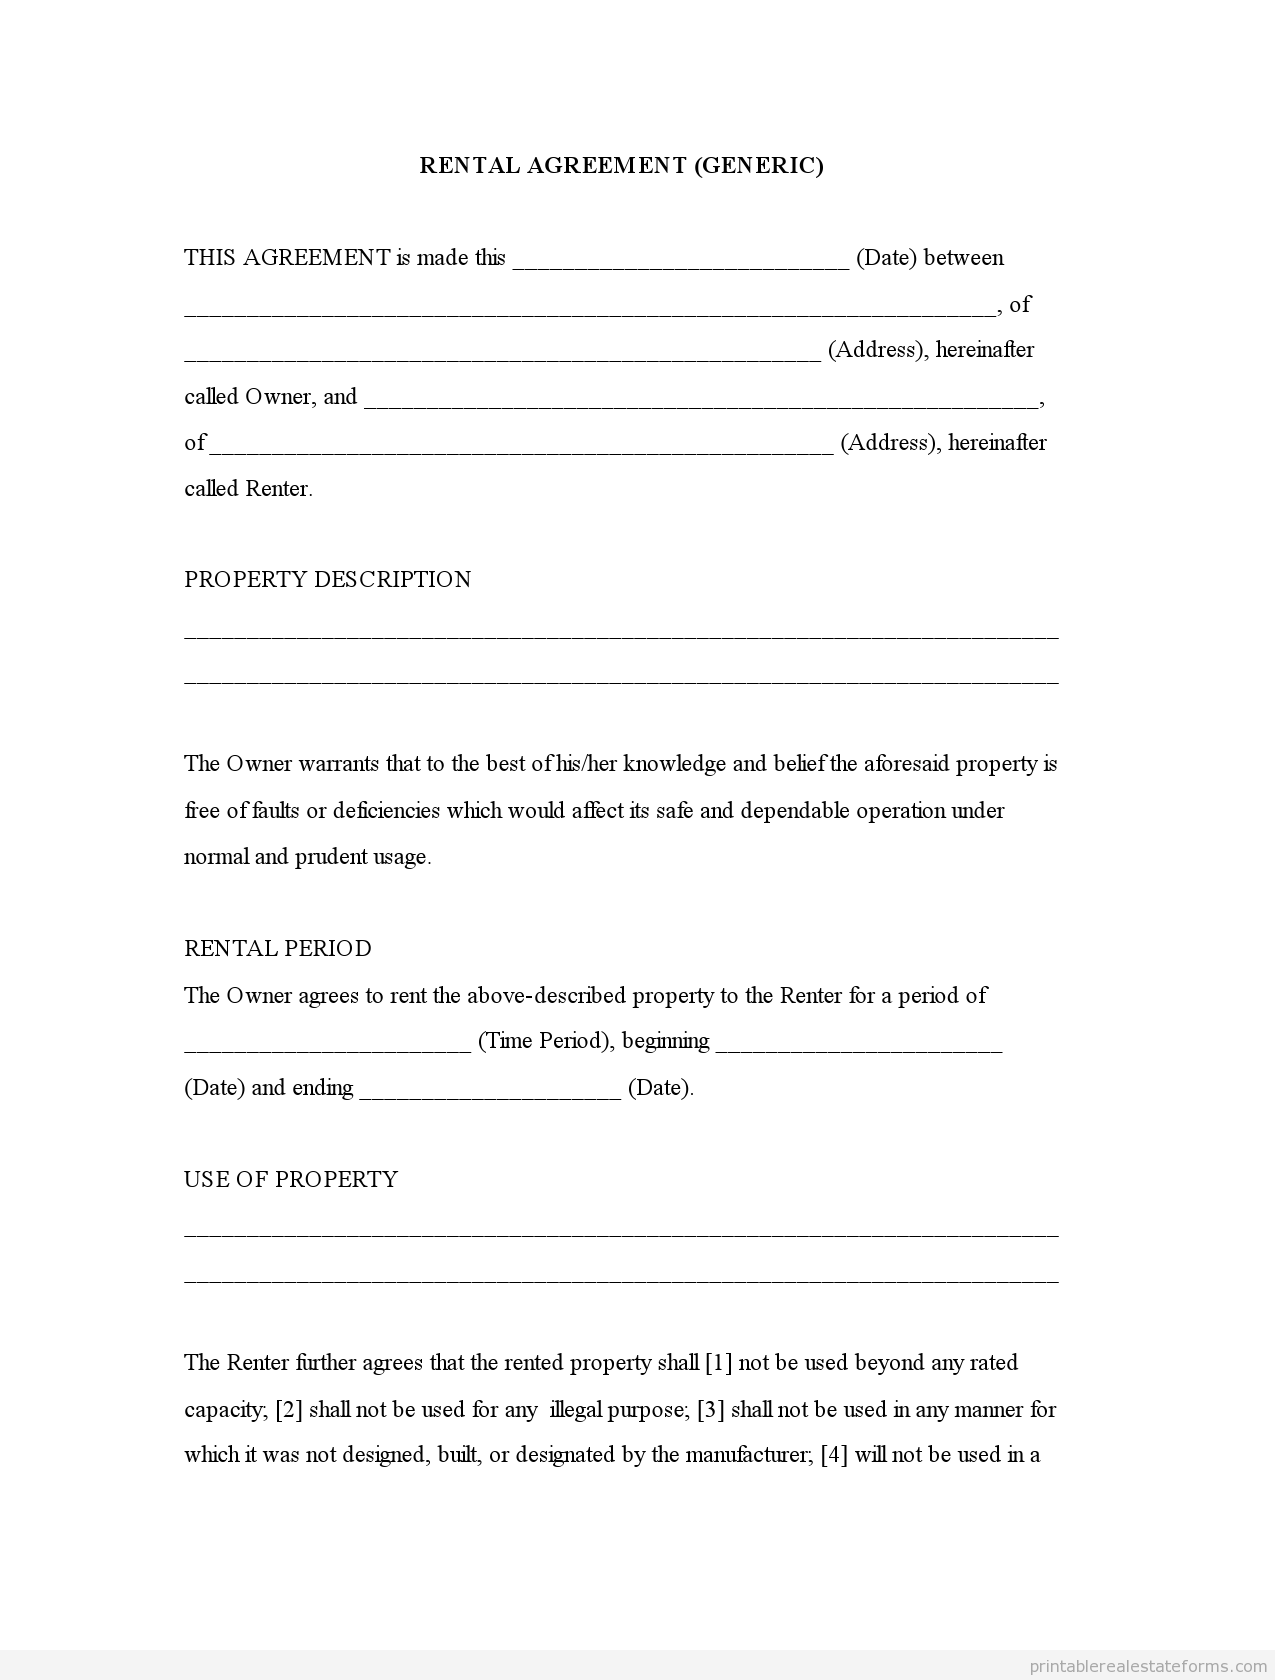 Free Printable Rental Agreement  Rental Agreement Generic